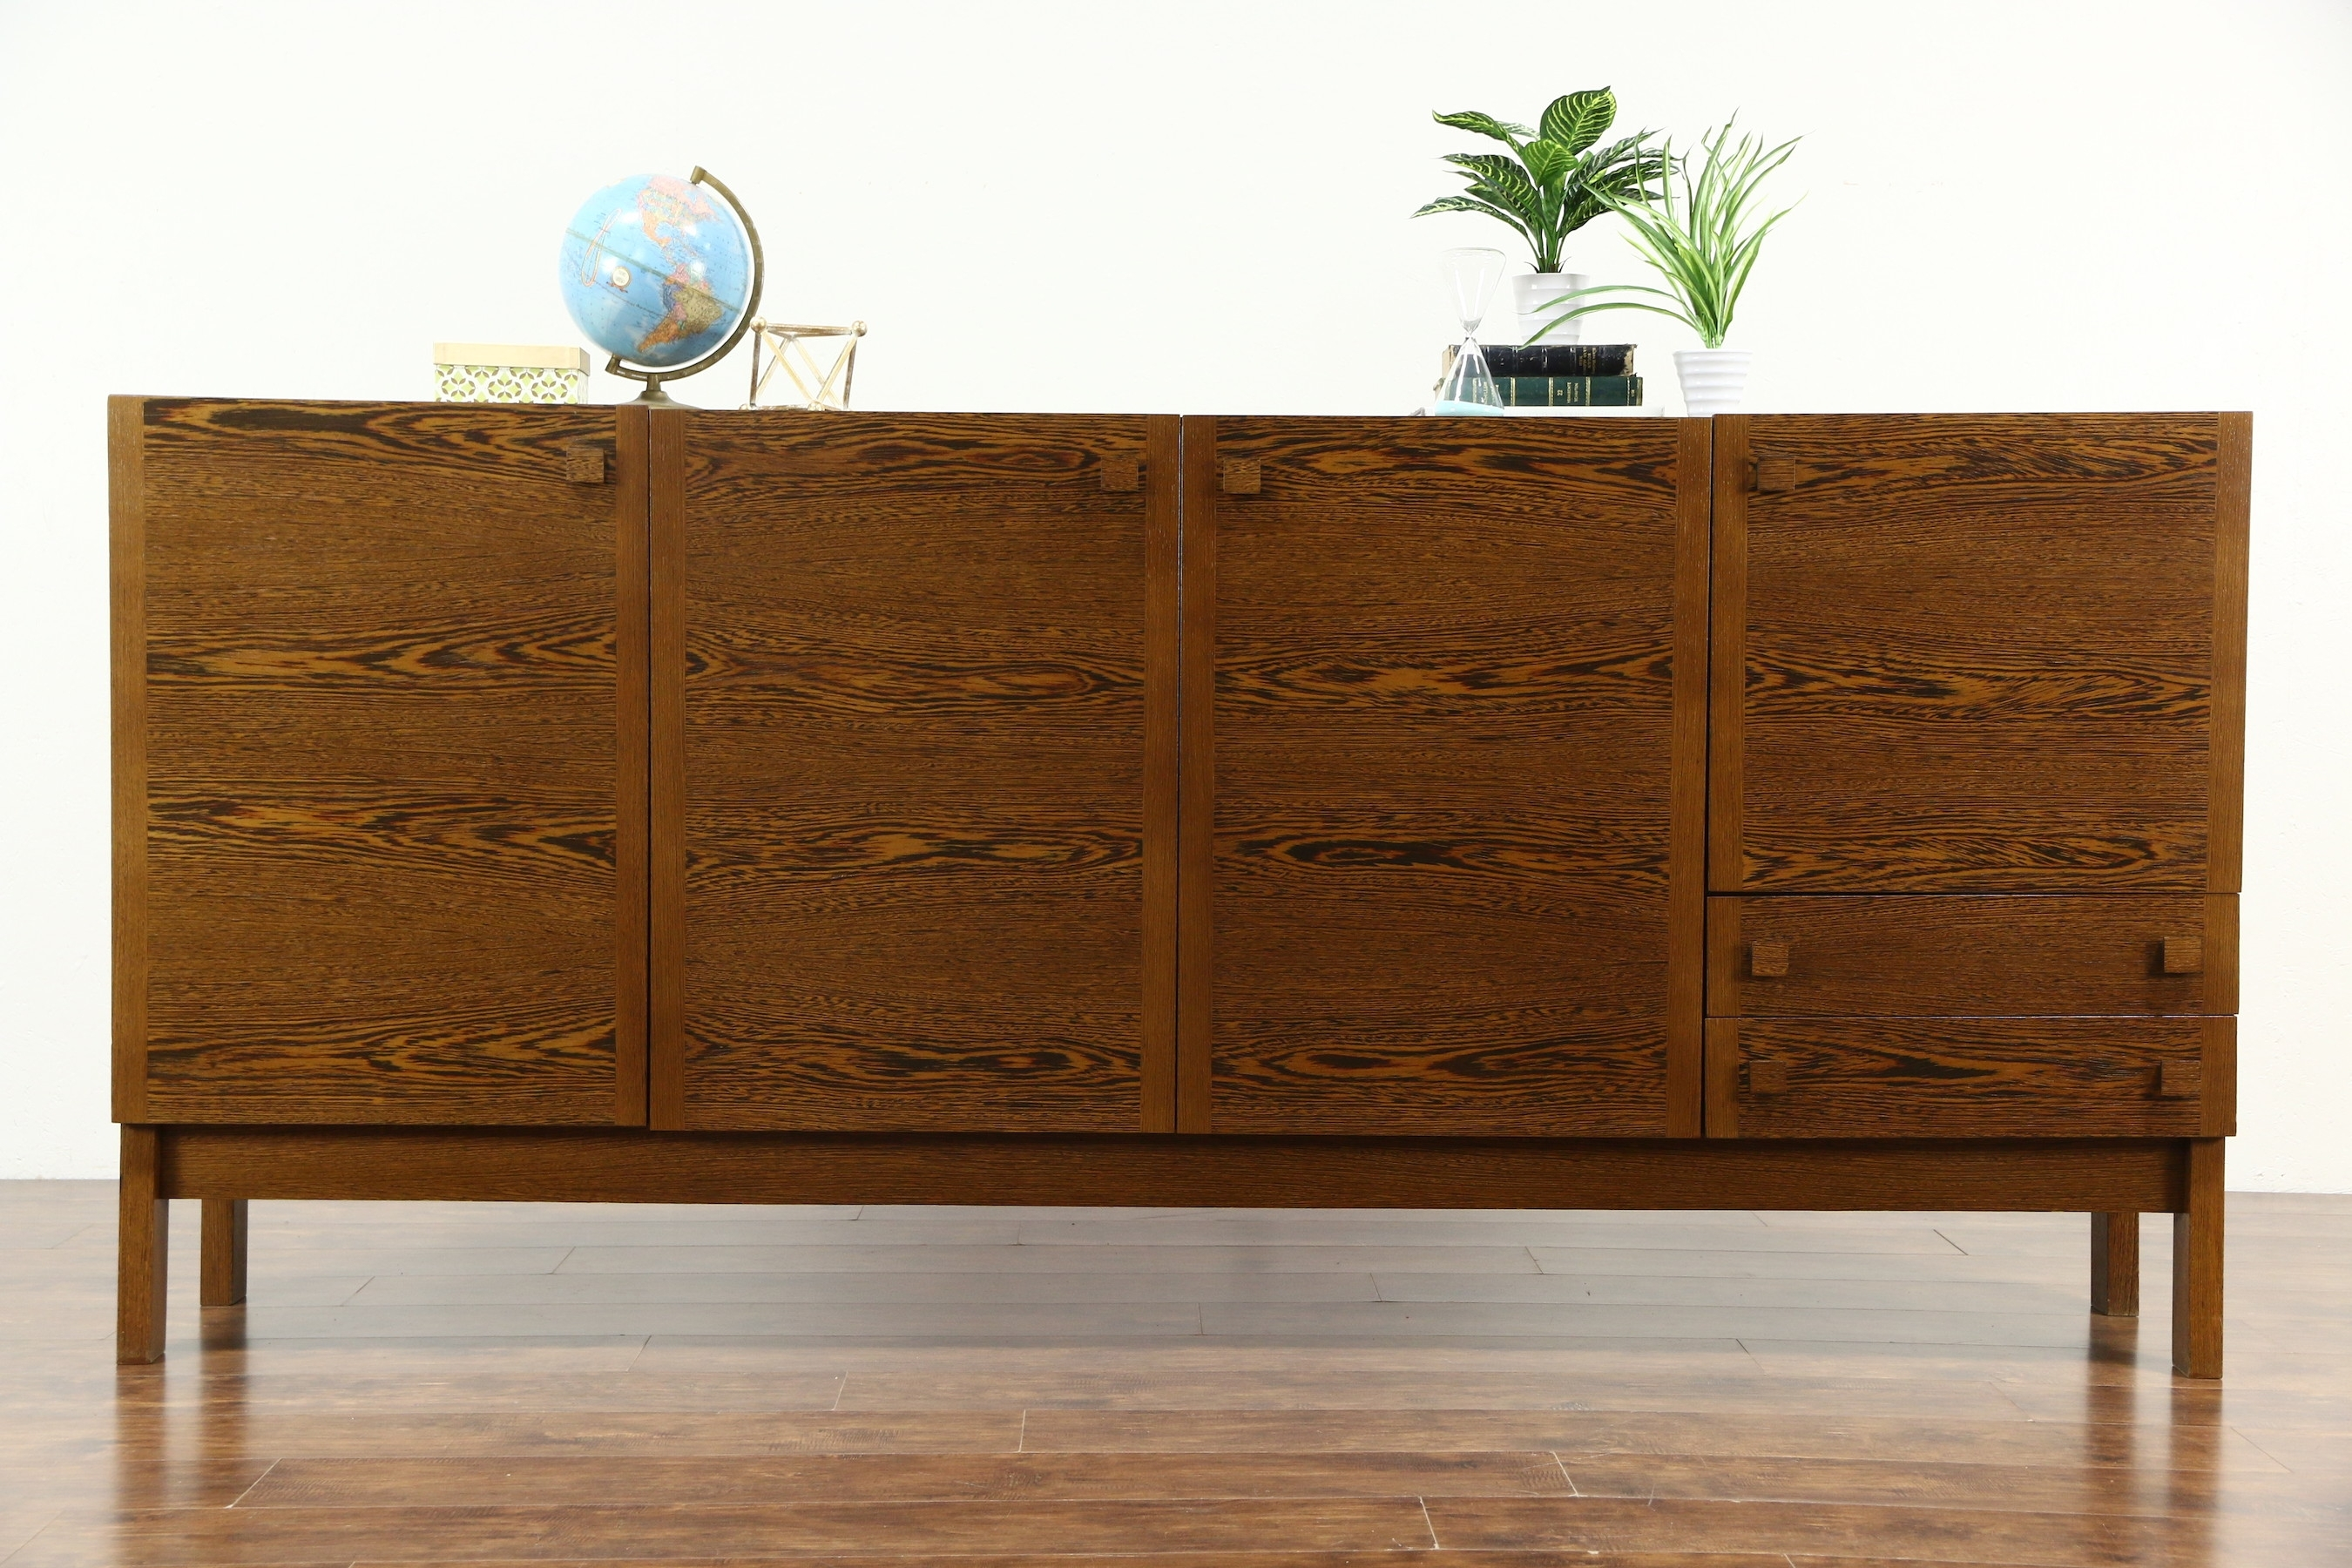 Sold - Midcentury Danish Modern Panga Panga 60's Vintage Sideboard for Vintage Brown Textured Sideboards (Image 18 of 30)